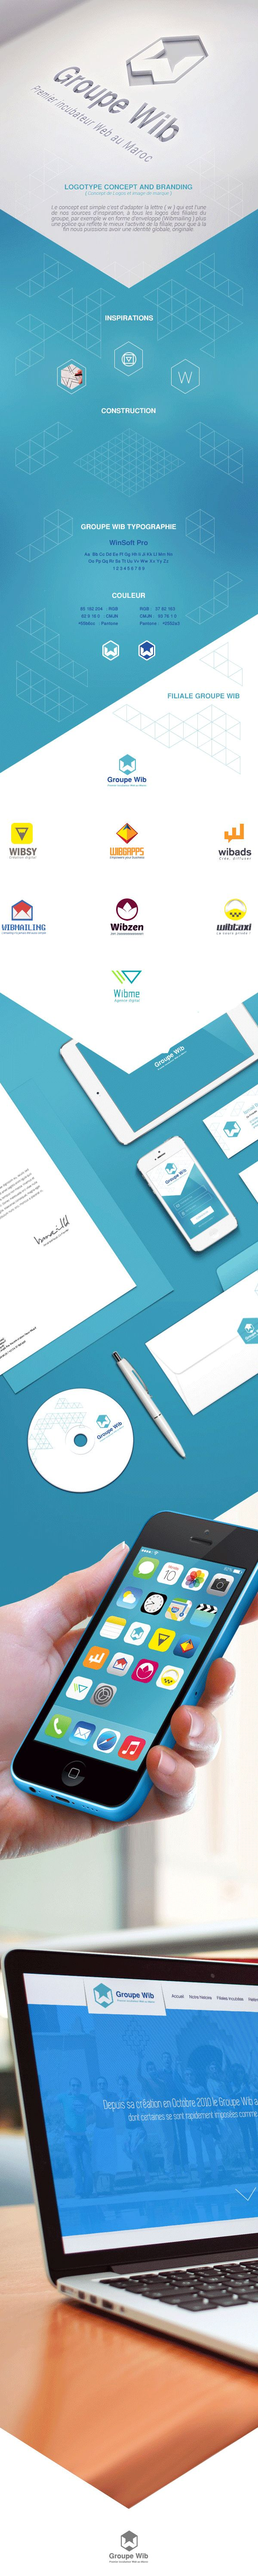 Groupe Wib Branding by Nizar Hassisni, via Behance